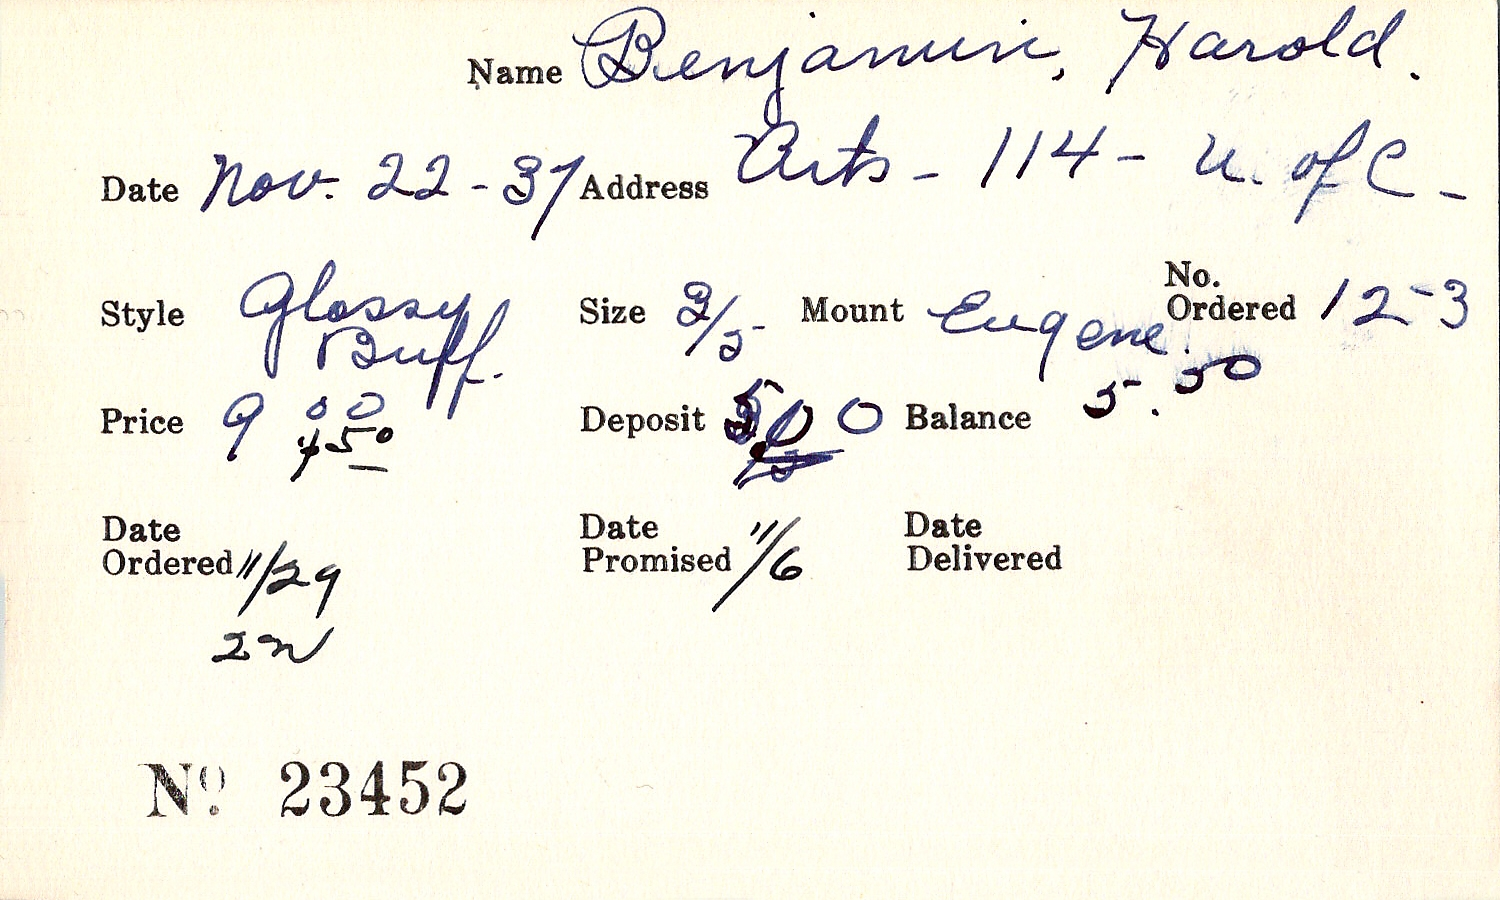 Index card for Harold Benjamin